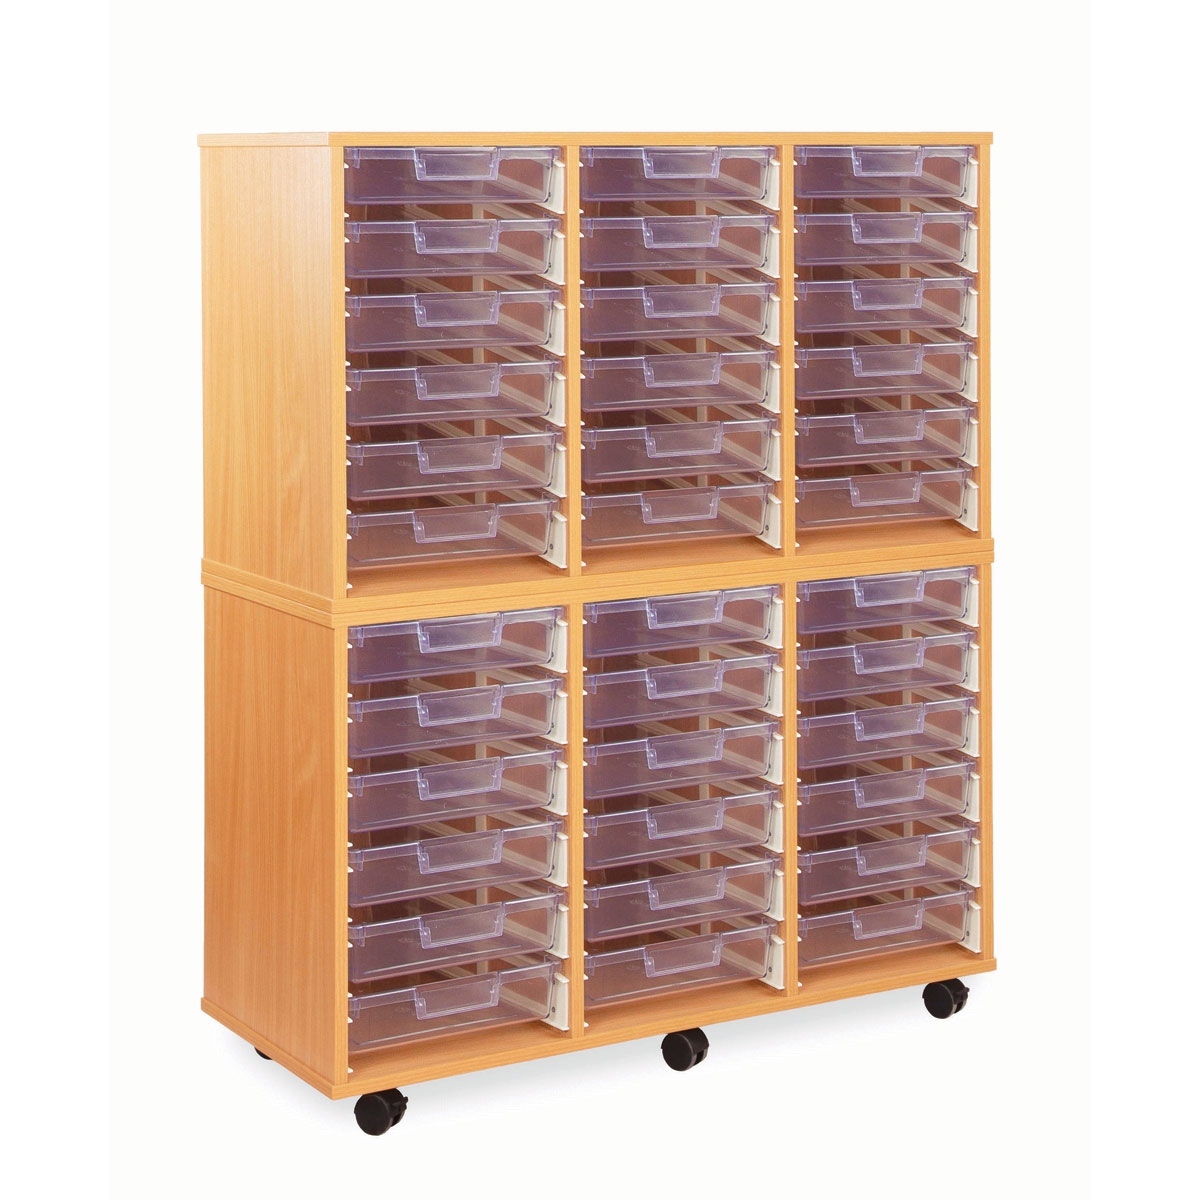 36 shallow tray storage unit with clear shallow trays for Shallow shelving unit